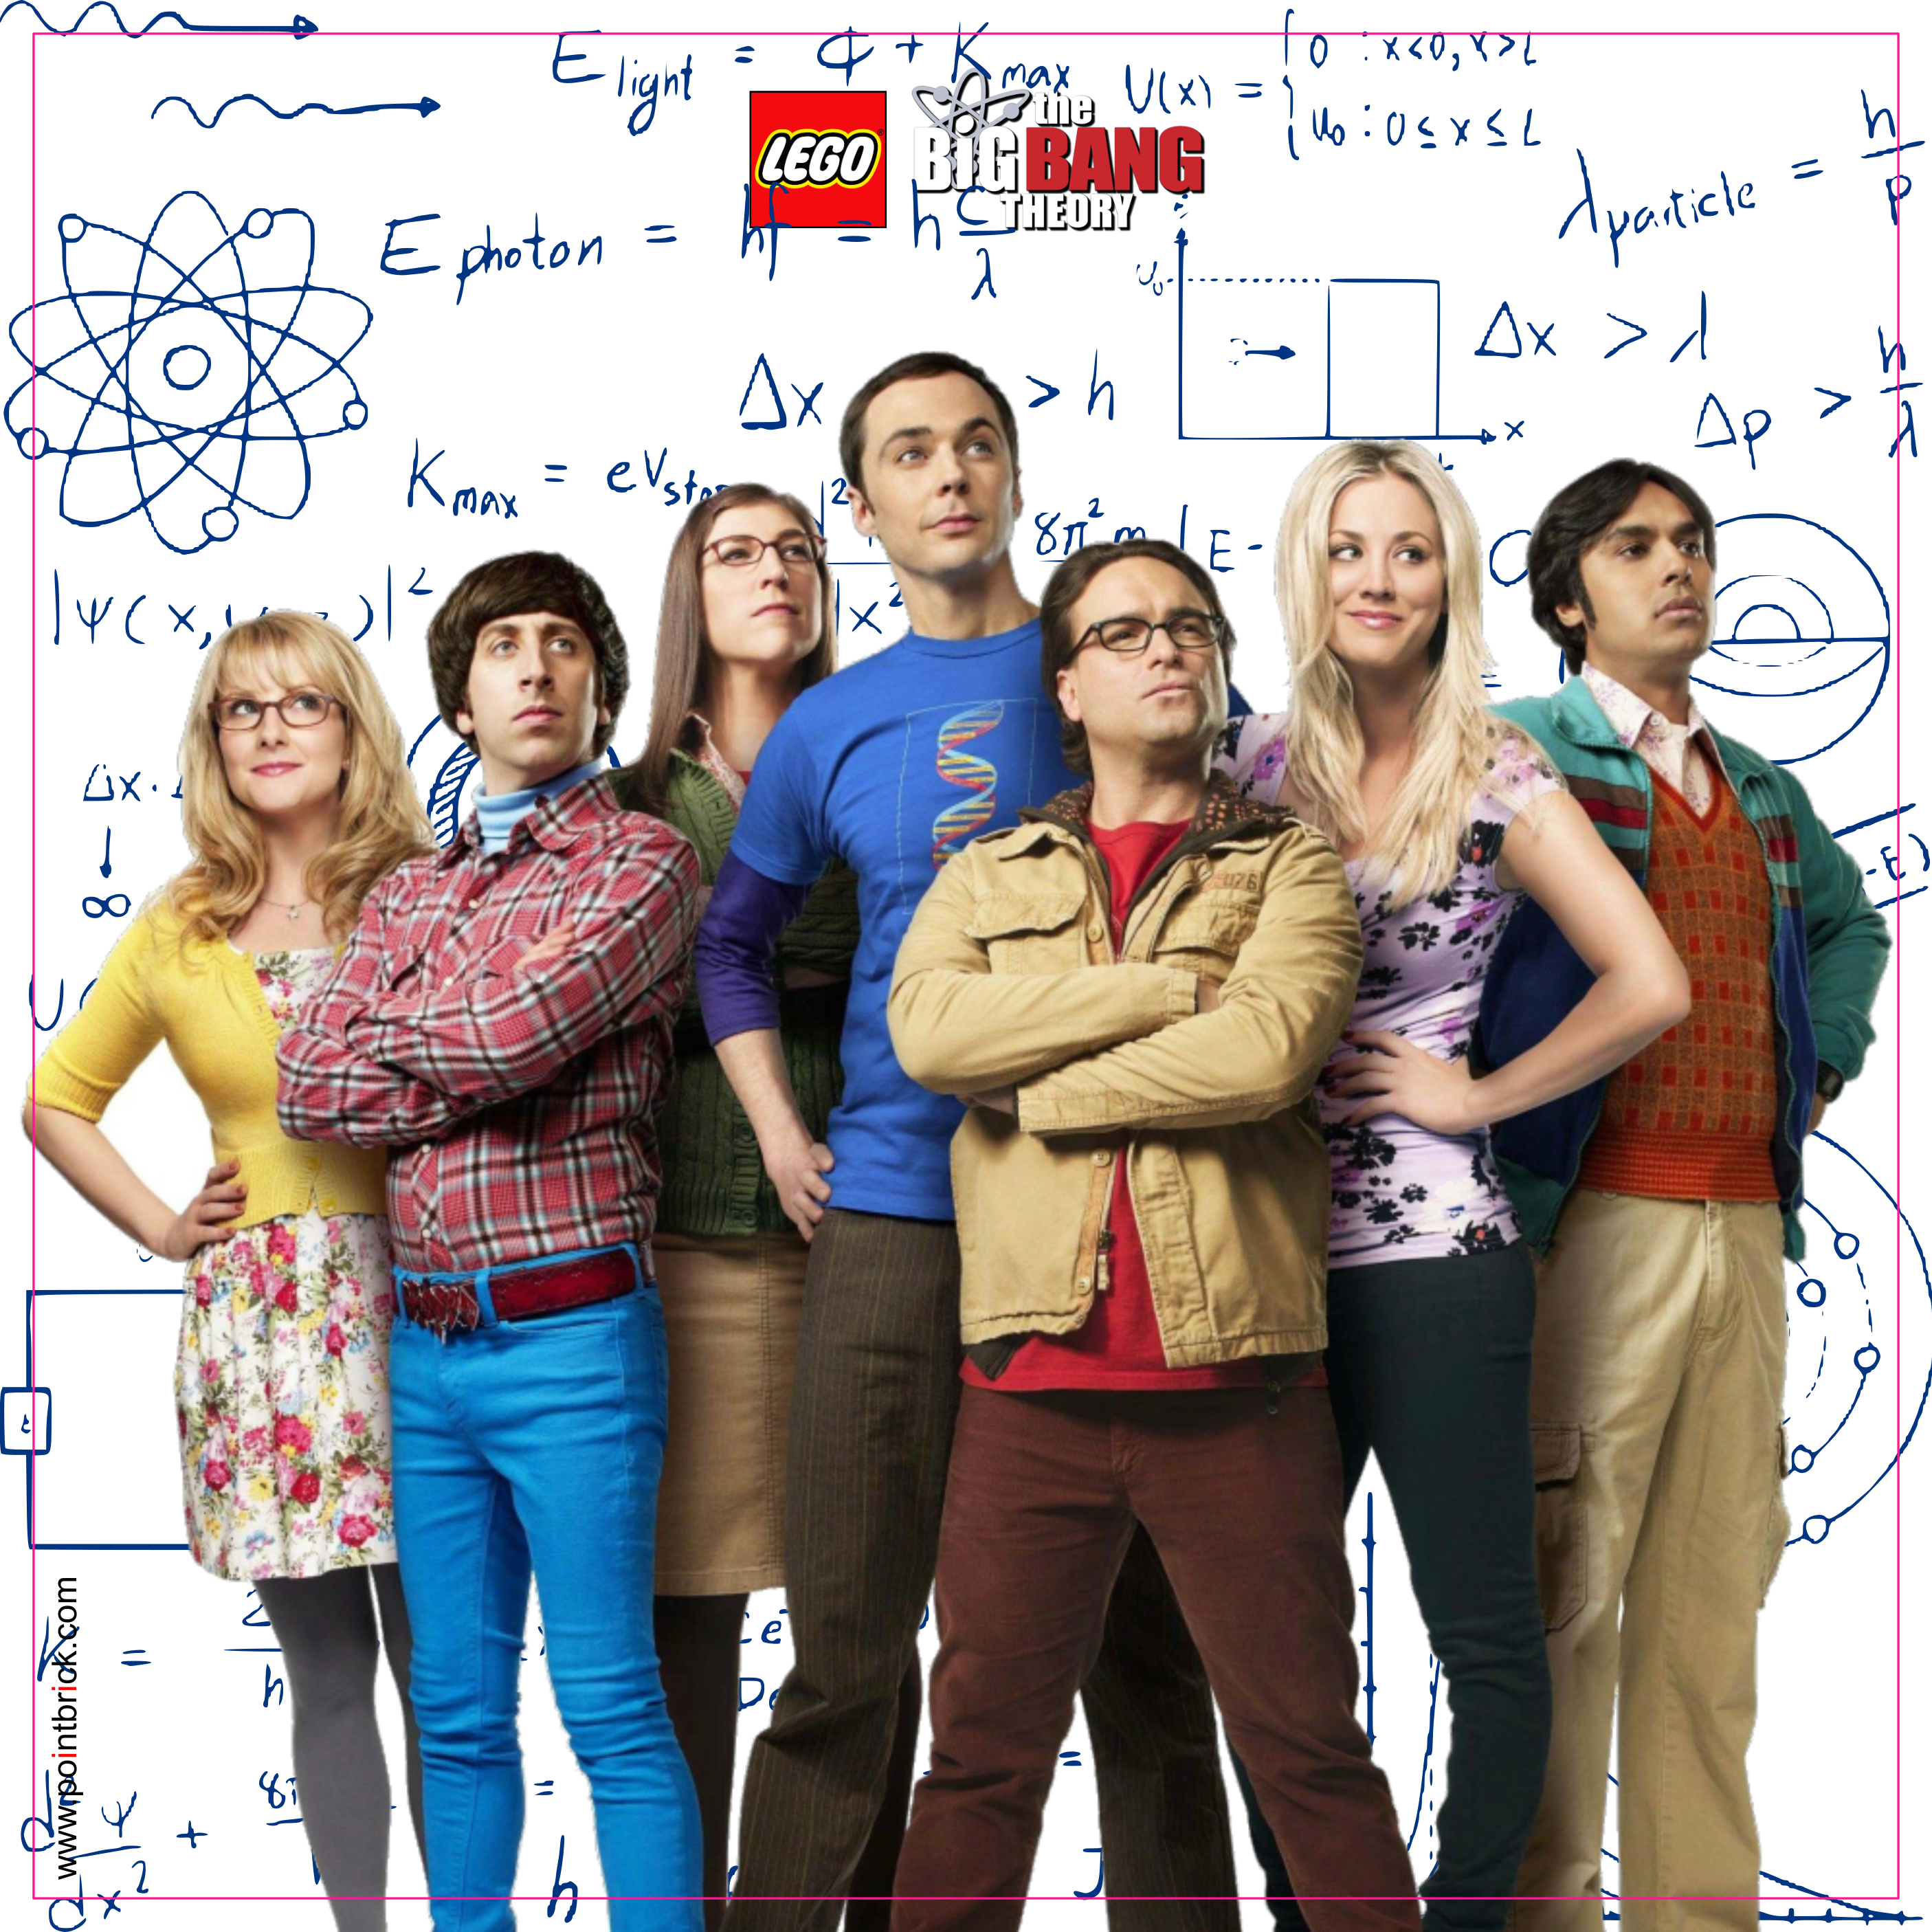 LEGO Minifigures Display Frame - Background 230mm The Big Bang Theory - Formula Plain - Clicca sull'immagine per scaricarla gratuitamente!